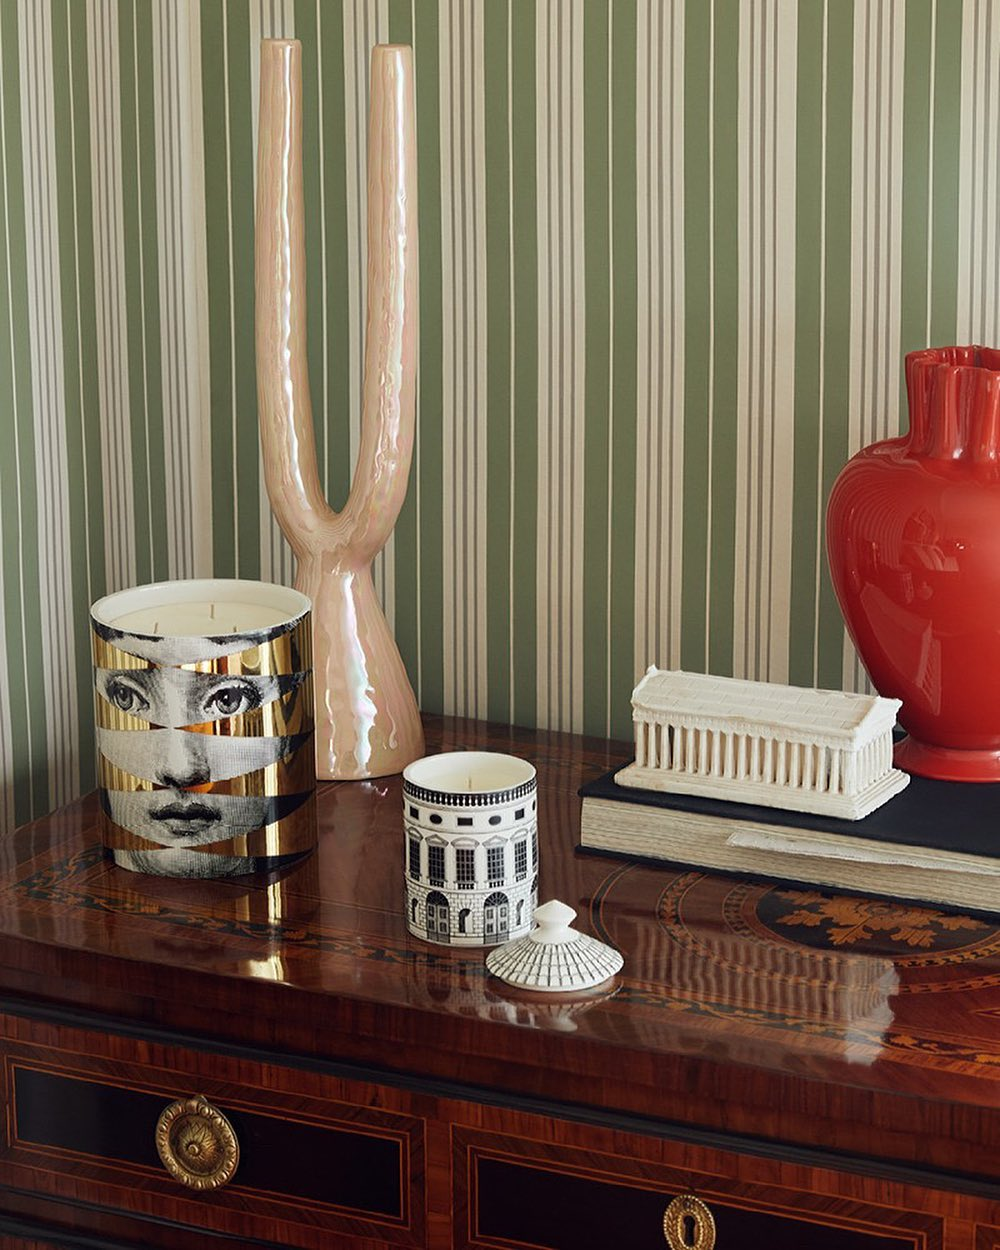 Two fornasetti candles on a a wooden dresser